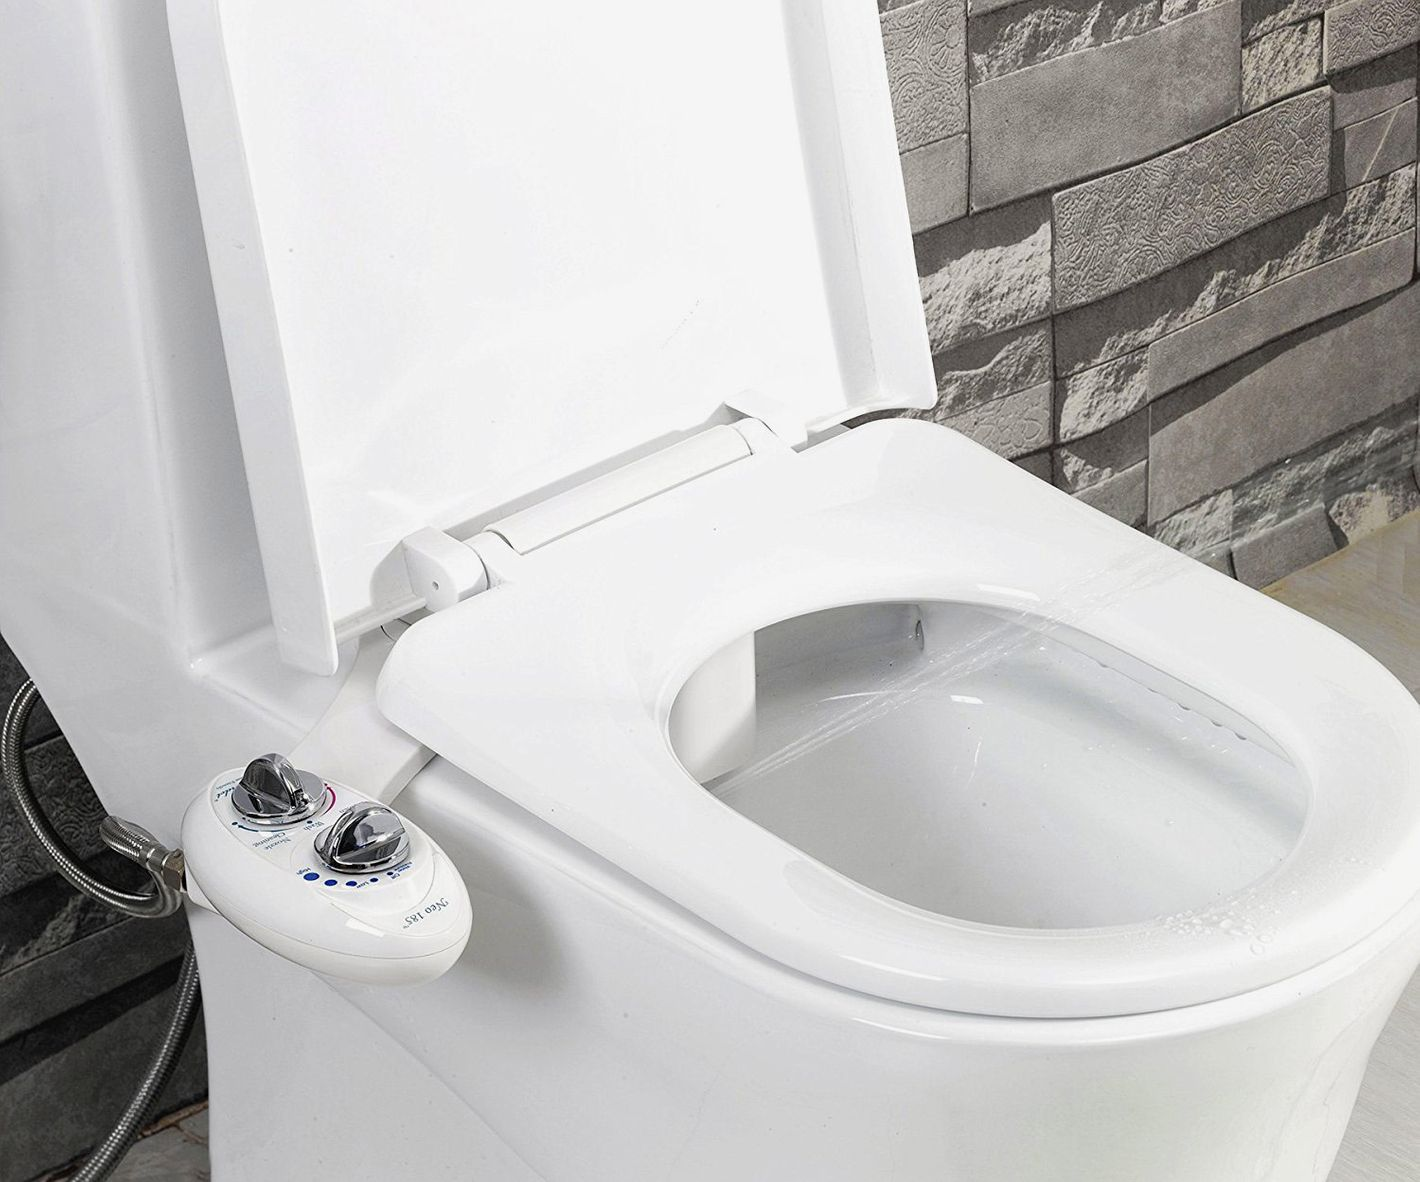 Toilet Which Cleans You